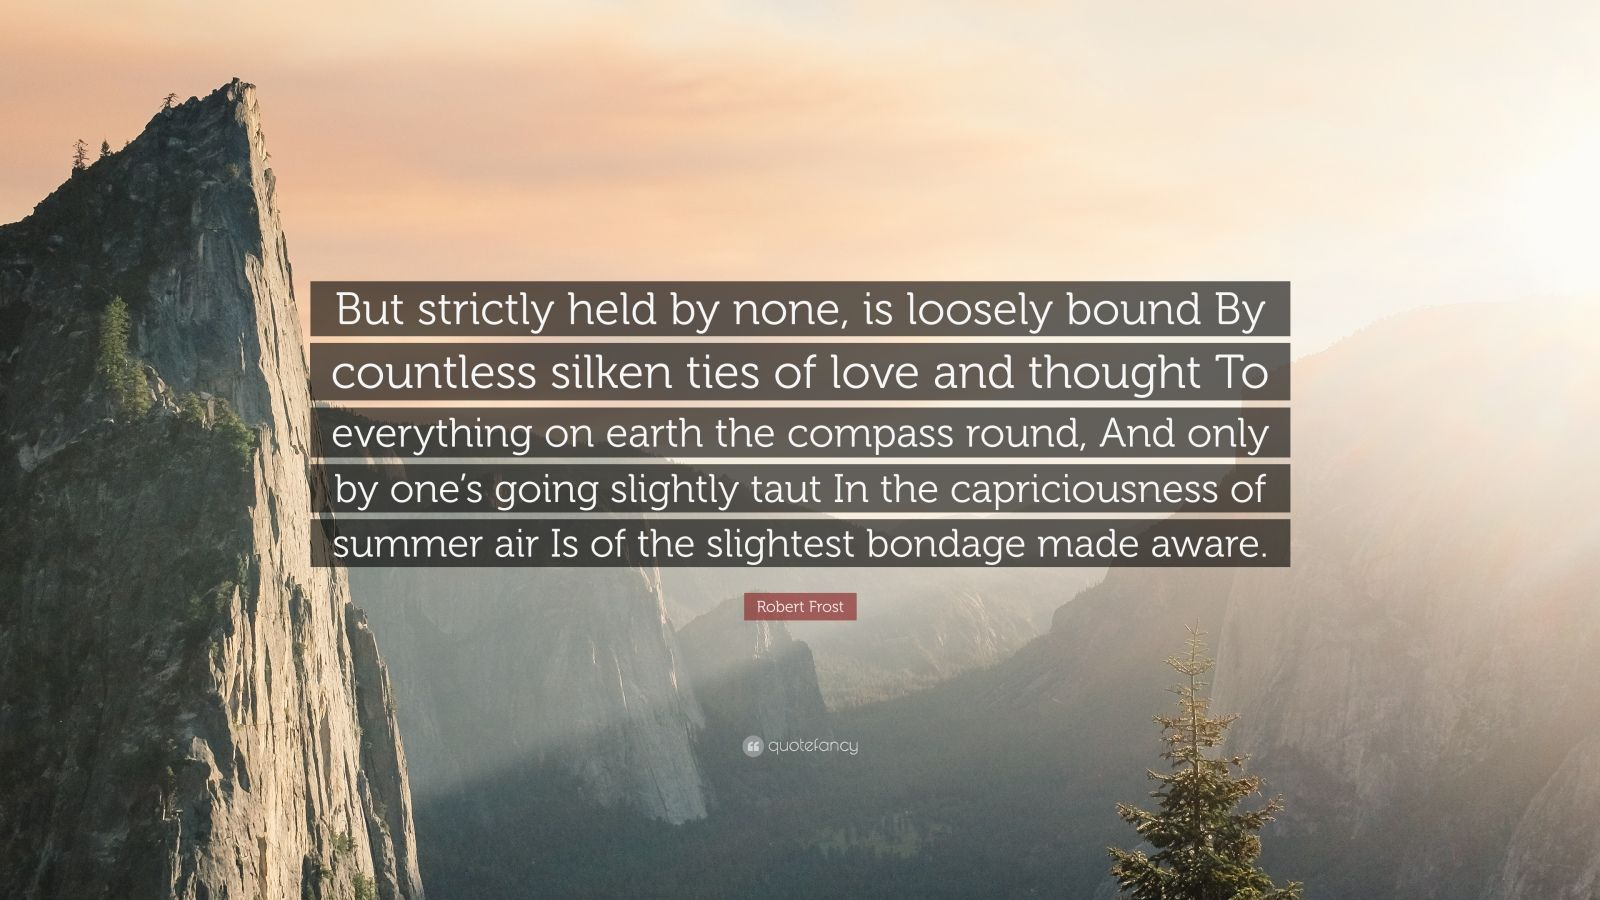 """Robert Frost Quote: """"But strictly held by none, is loosely bound By countless silken ties of love and thought To everything on earth the compass round, And only by one's going slightly taut In the capriciousness of summer air Is of the slightest bondage made aware."""""""